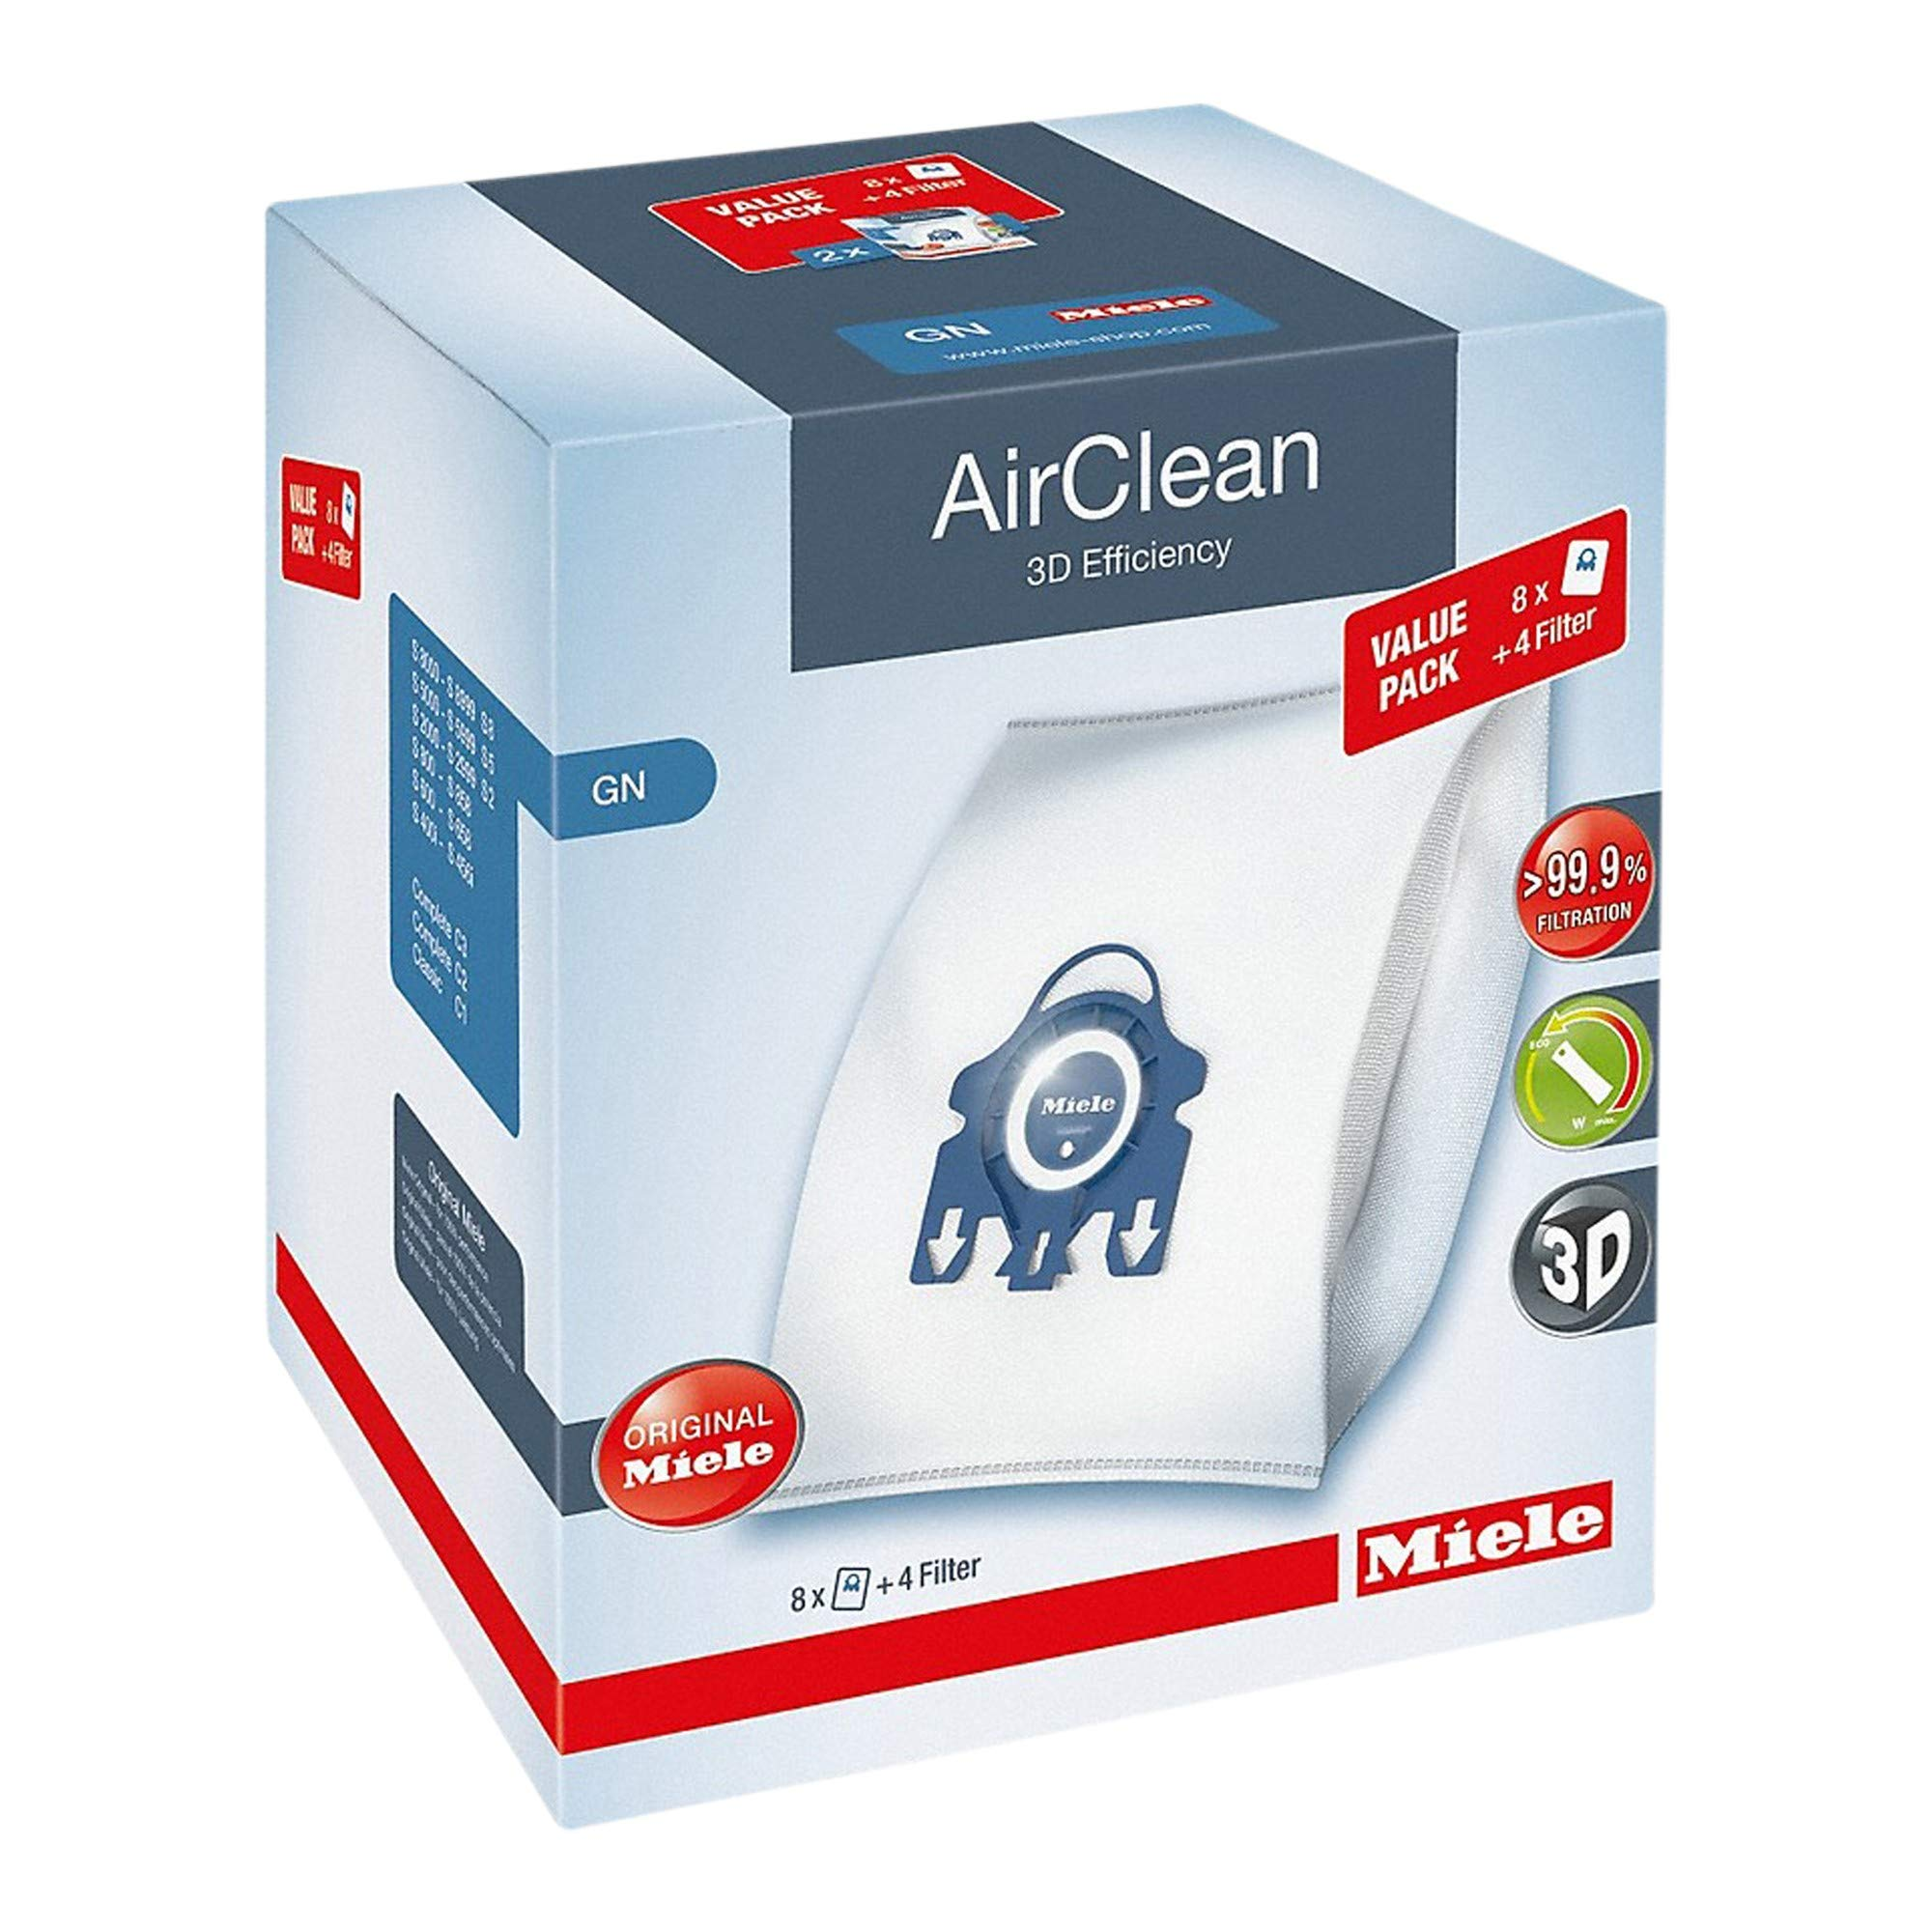 Miele AirClean 3D Efficiency Dust Bag, Type GN, XL Value Pack, 8 Bags & 4 Filters